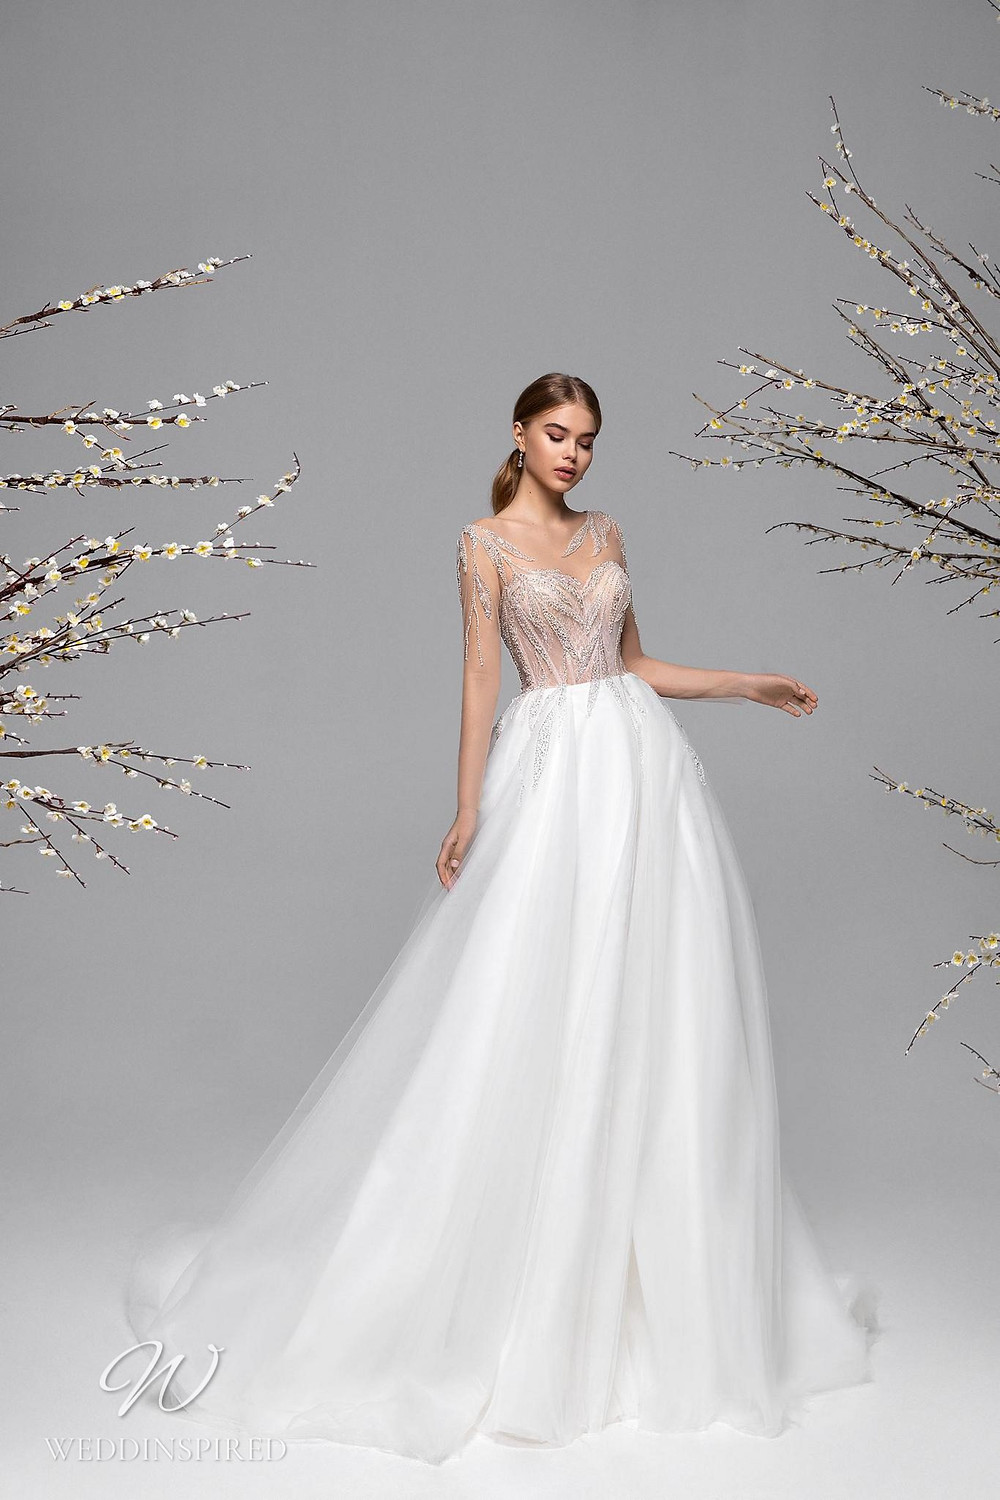 A Ricca Sposa mesh A-line wedding dress with an illusion top